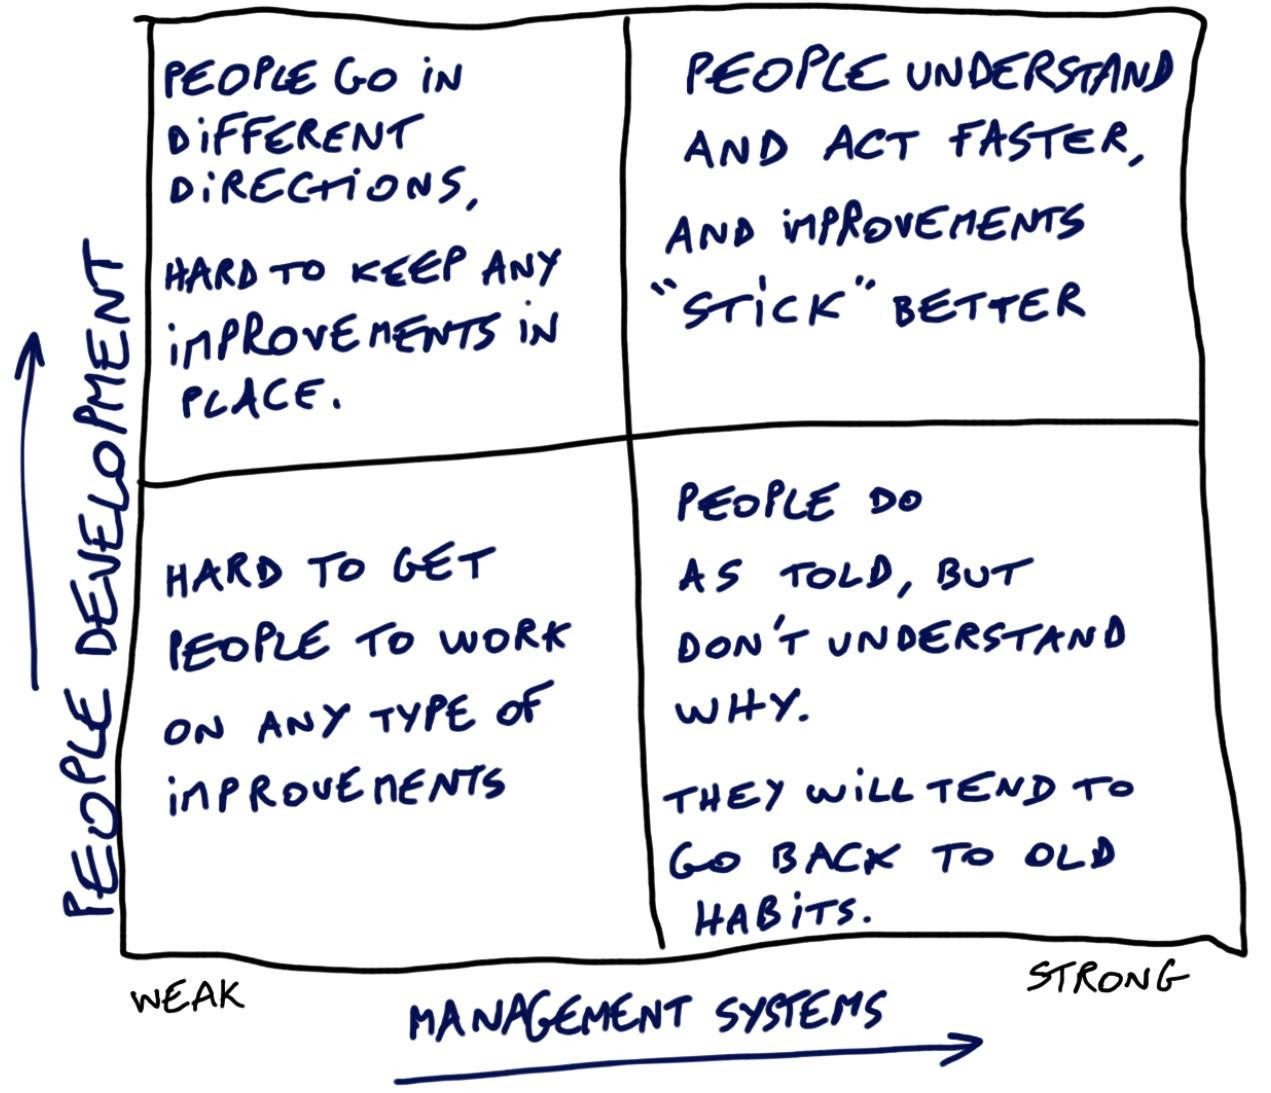 A chart that shows the people development and management stress